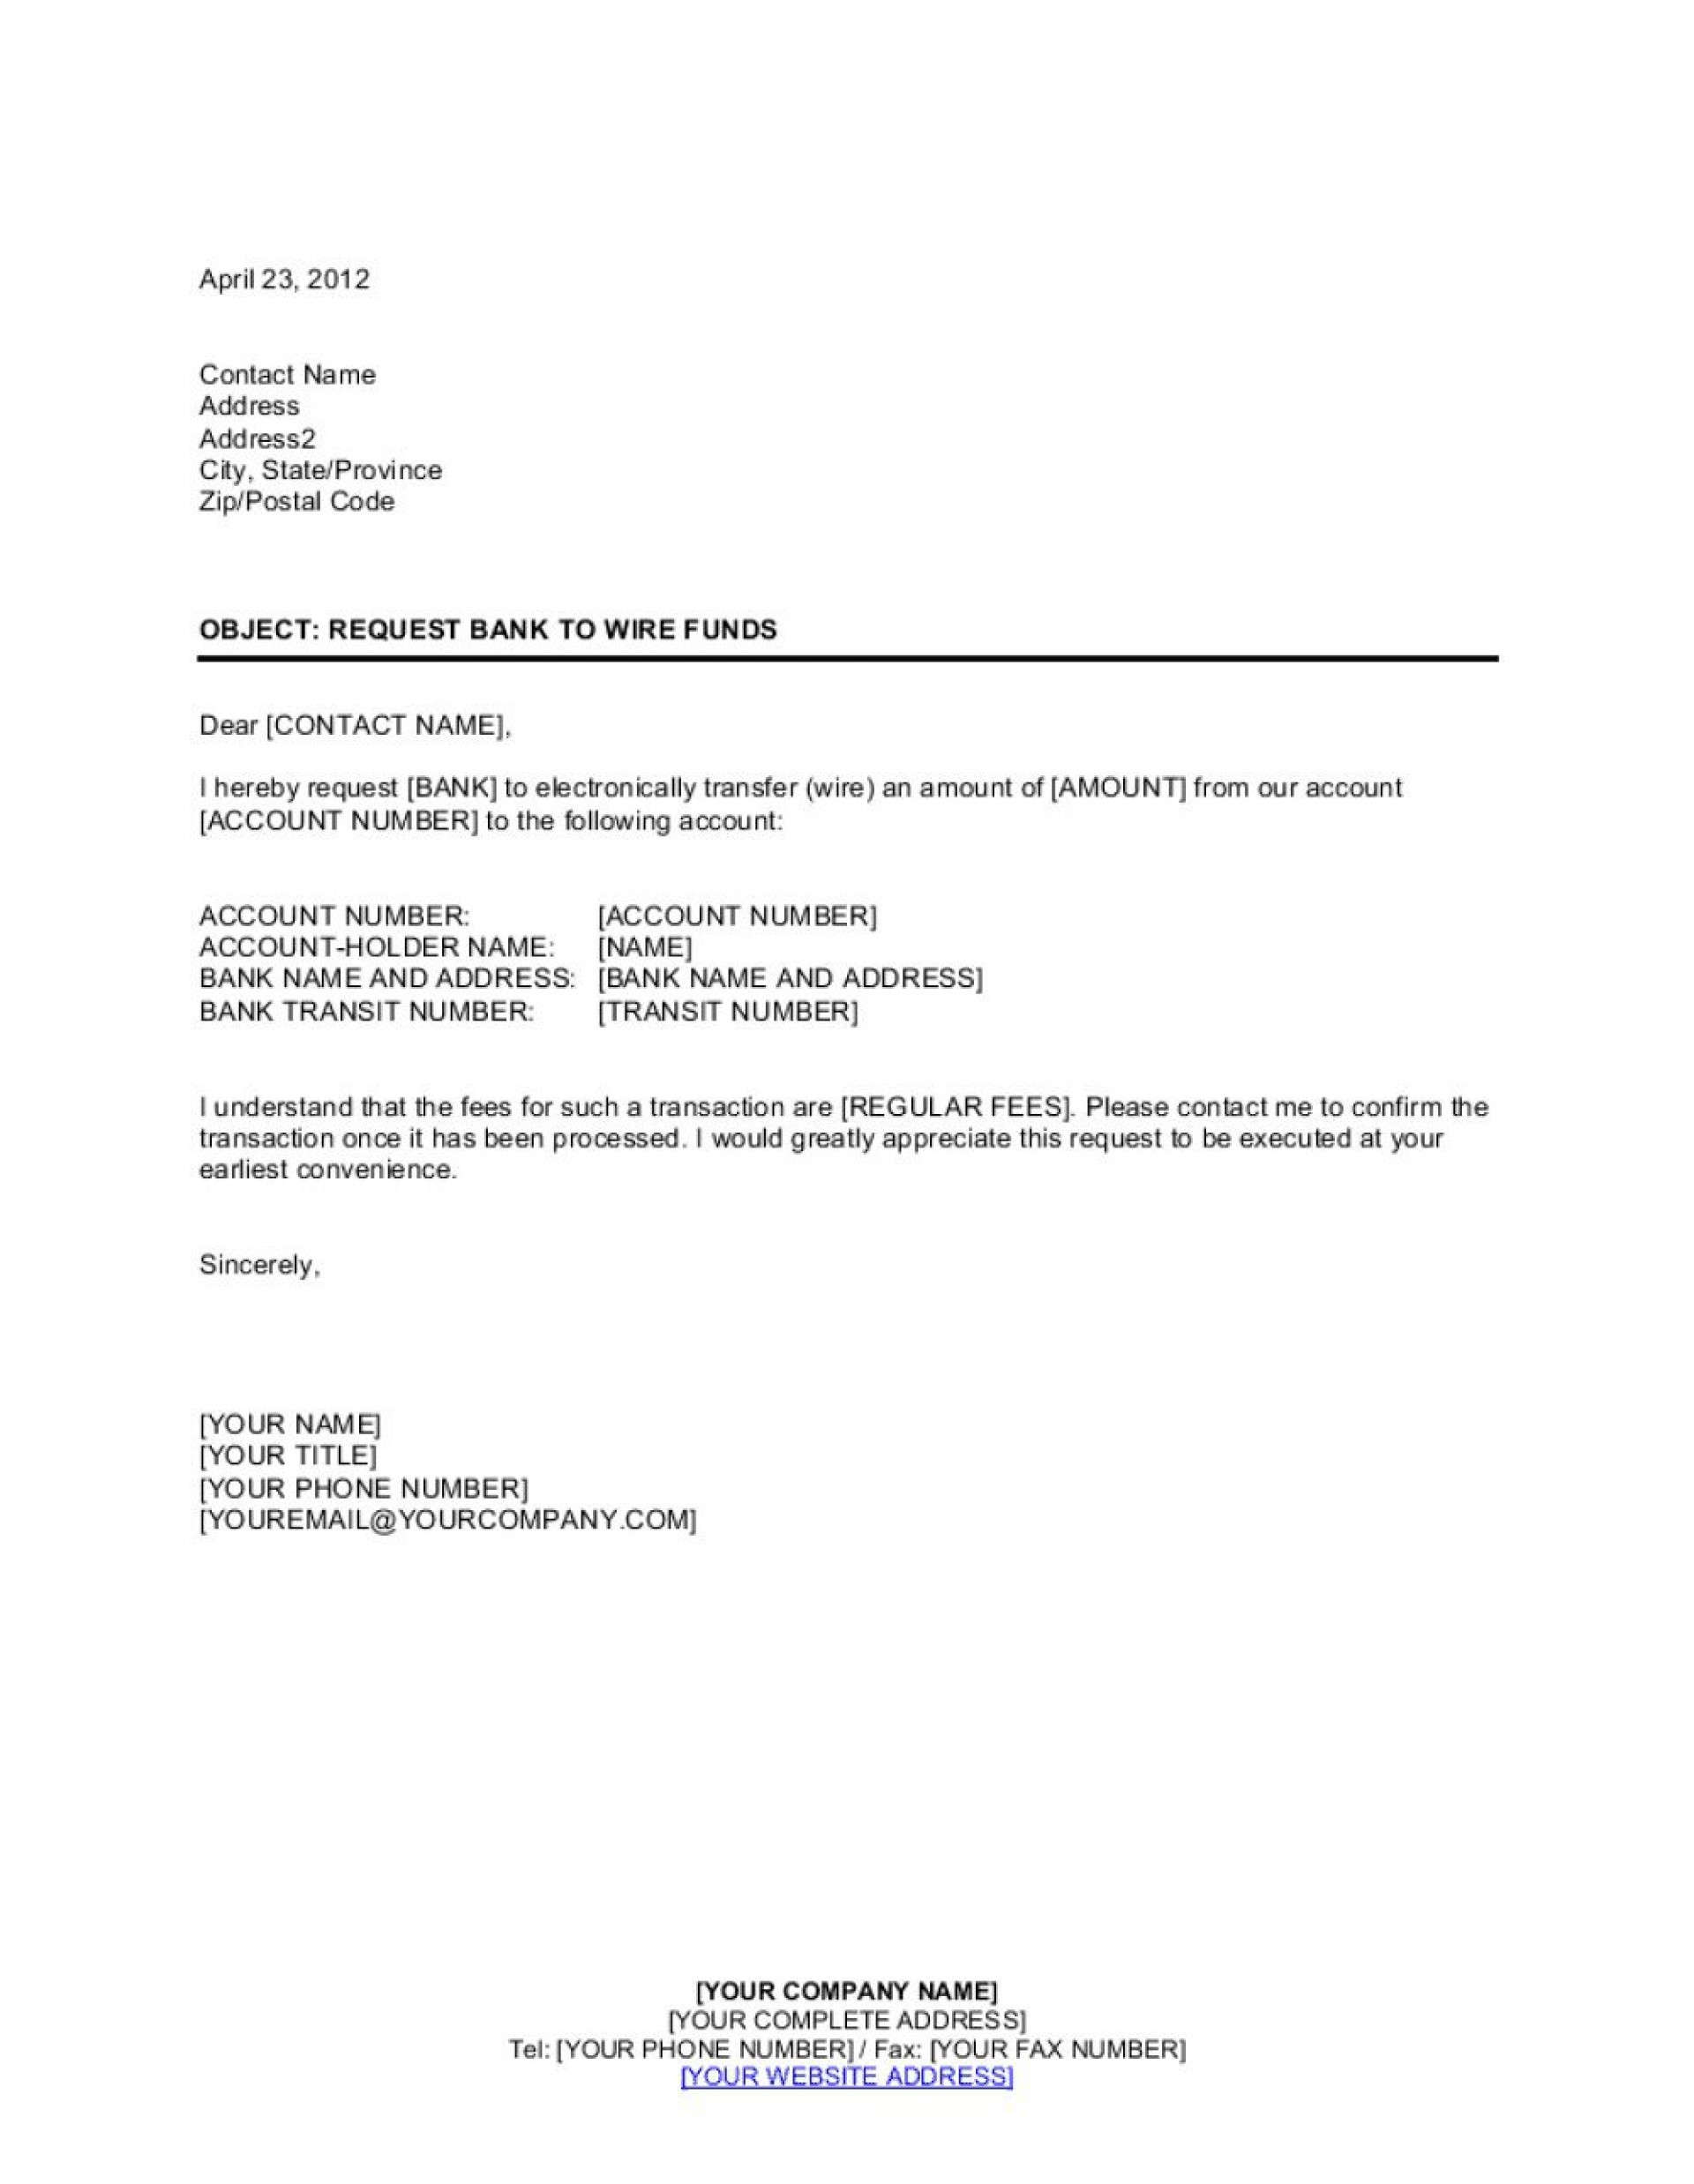 007 Stupendou Wire Transfer Instruction Template High Def  Request Form Chase International1920